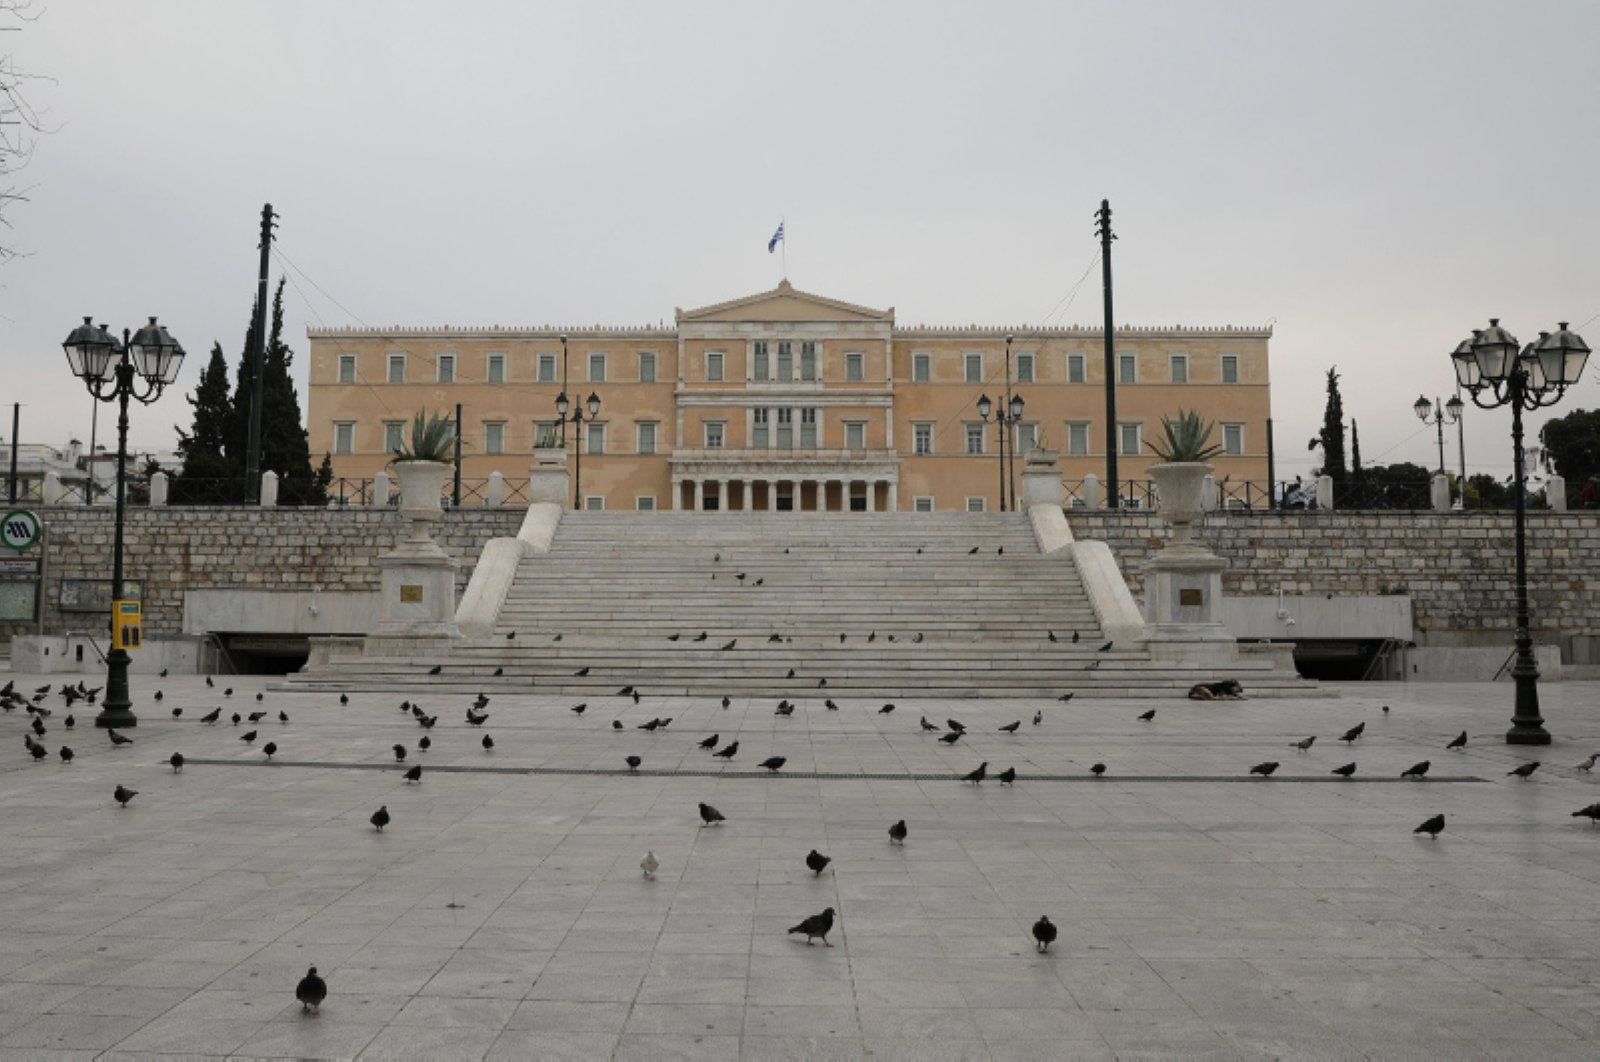 Pigeons flock on the empty Syntagma Square with the Greek parliament building in the background, following an outbreak of COVID-19, in Athens, Greece, March 22, 2020. (Reuters Photo)